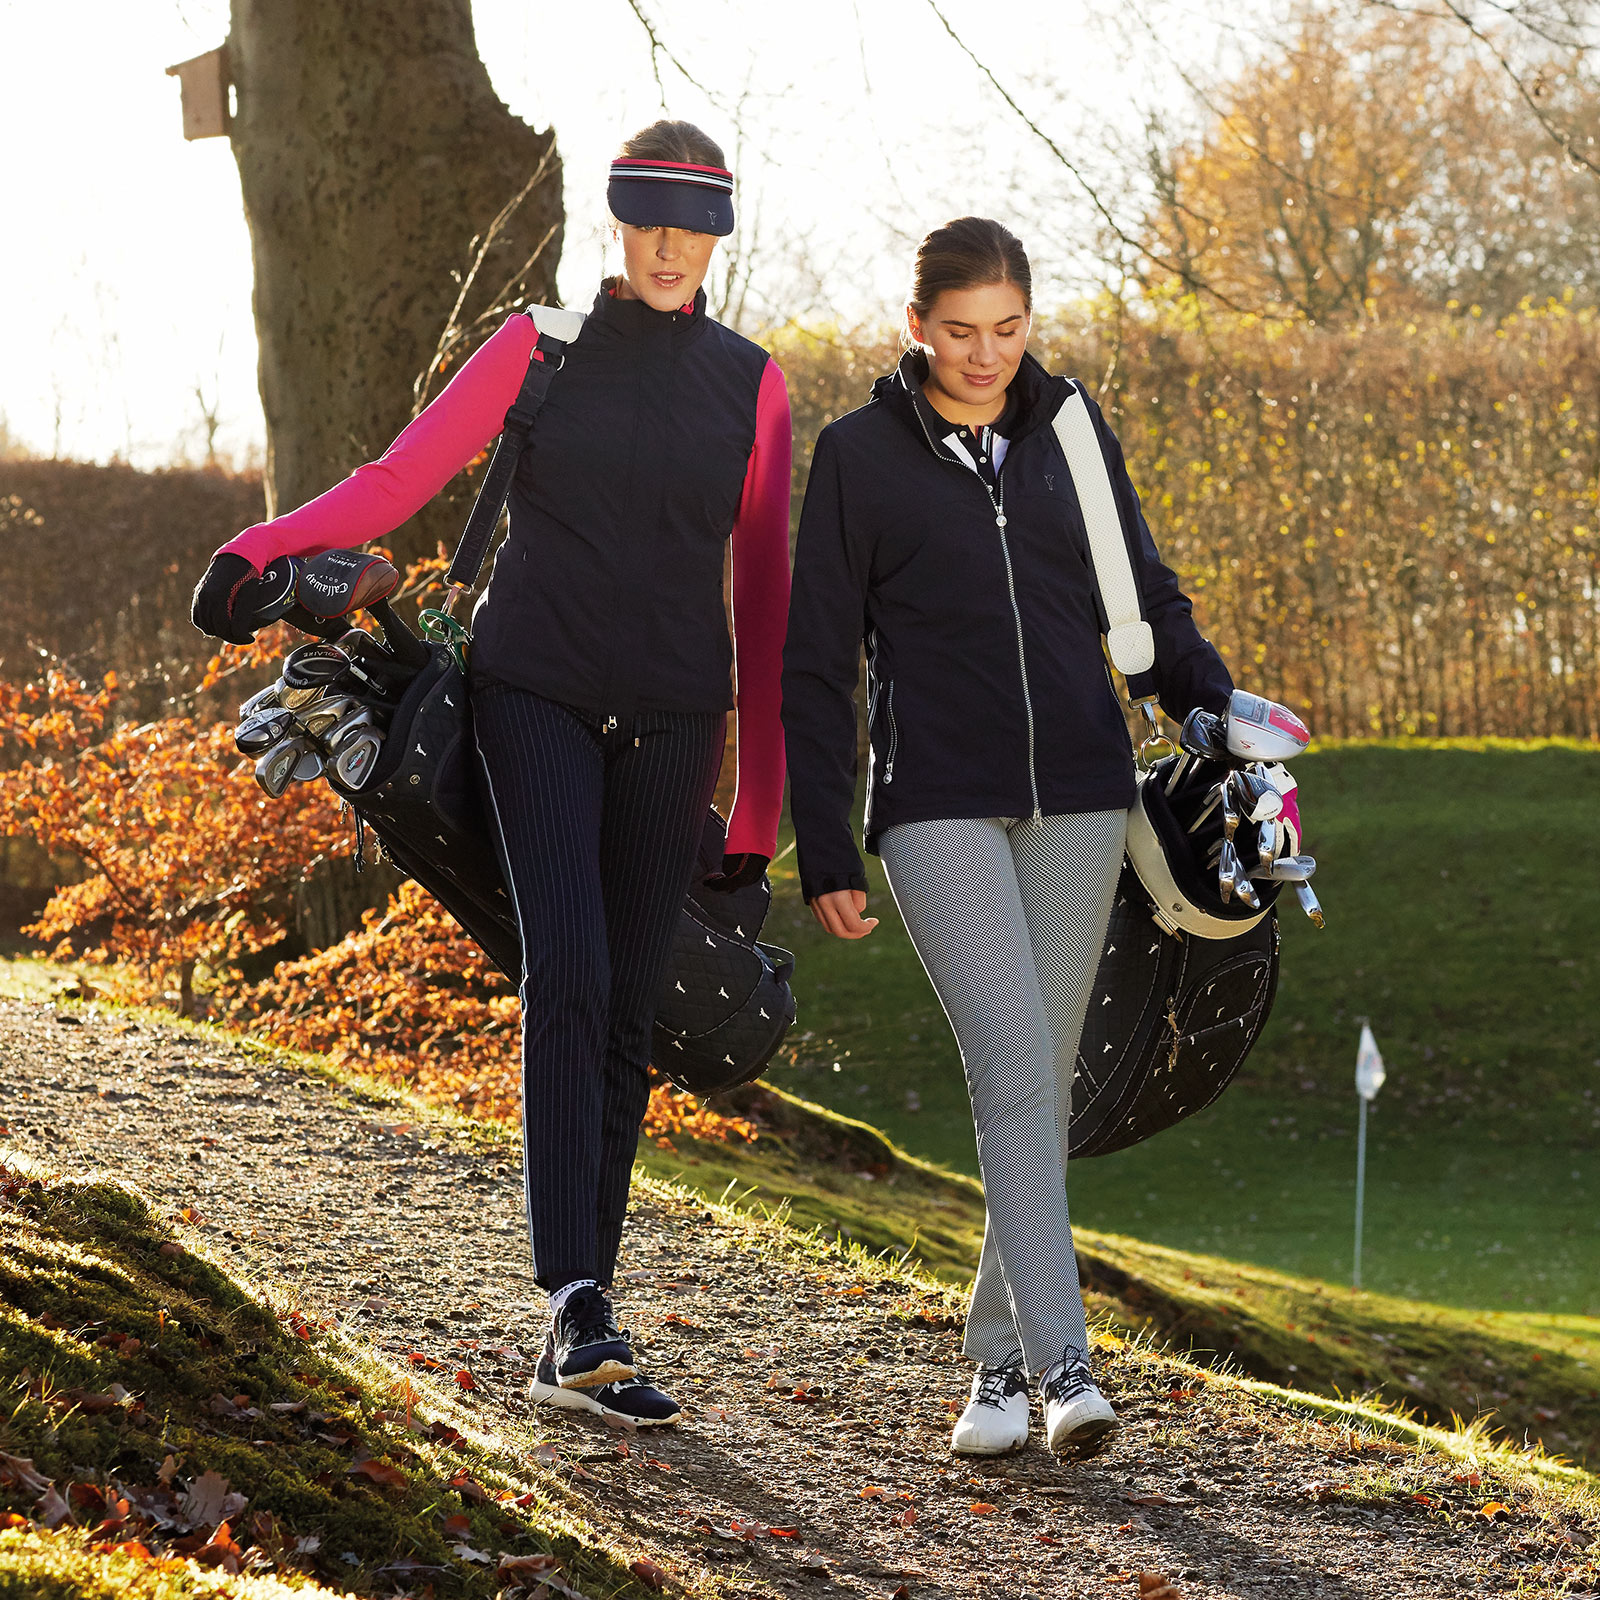 GOLFINO News - Outfits of the Month: Trendy looks for active golfers